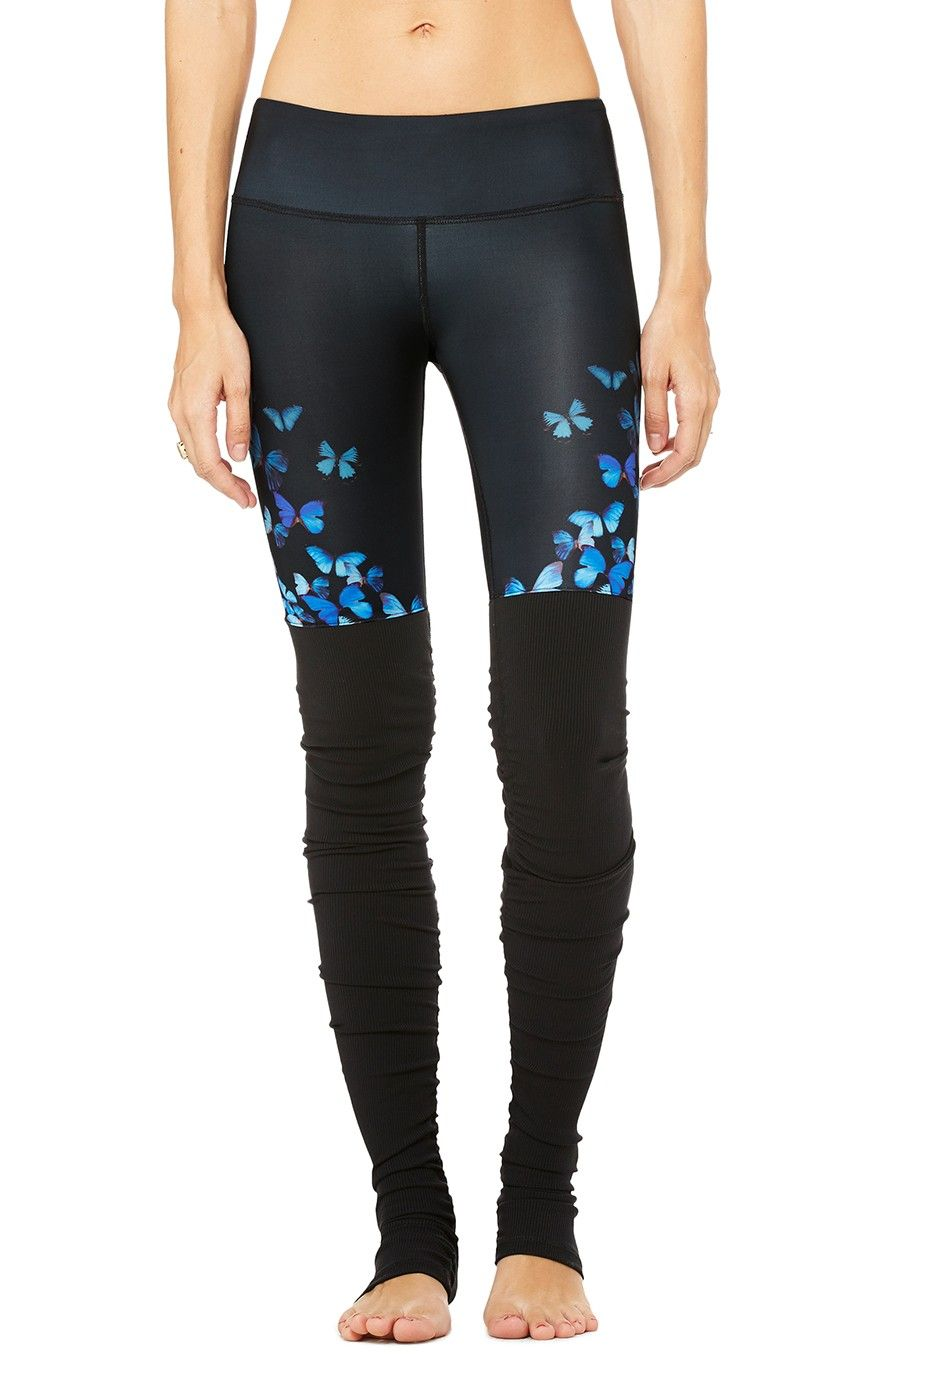 417d8725ec338 Gypset Goddess x Alo Goddess Legging | My Style | Yoga leggings ...